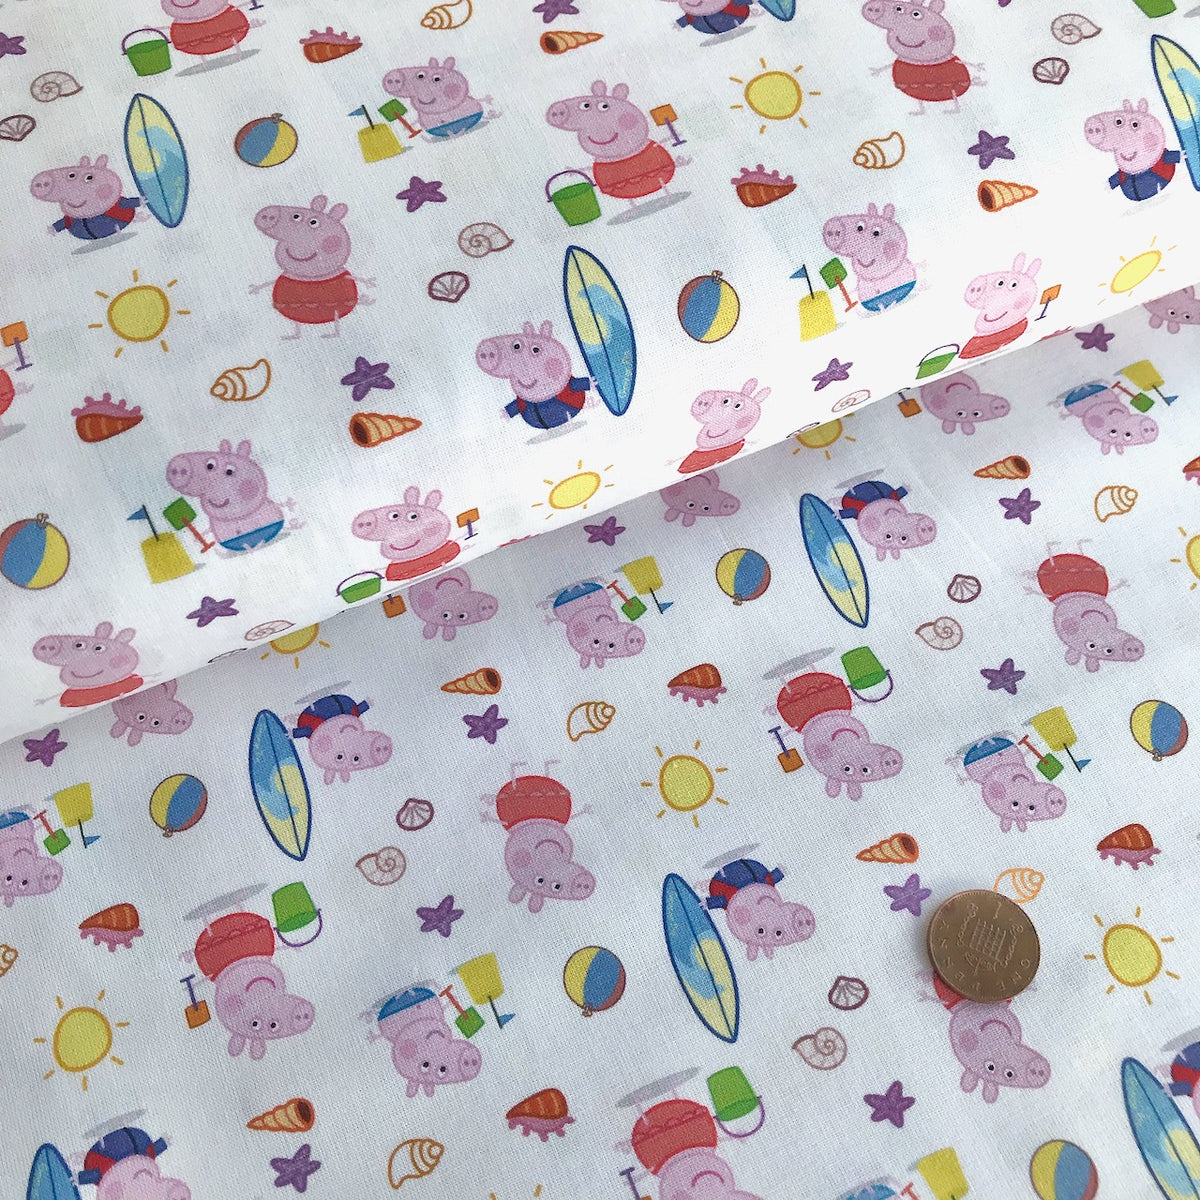 Peppa Pig at the Beach 100% Cotton Fabric 58 Inches Wide (140cm) Sold Per 1/2 Metre